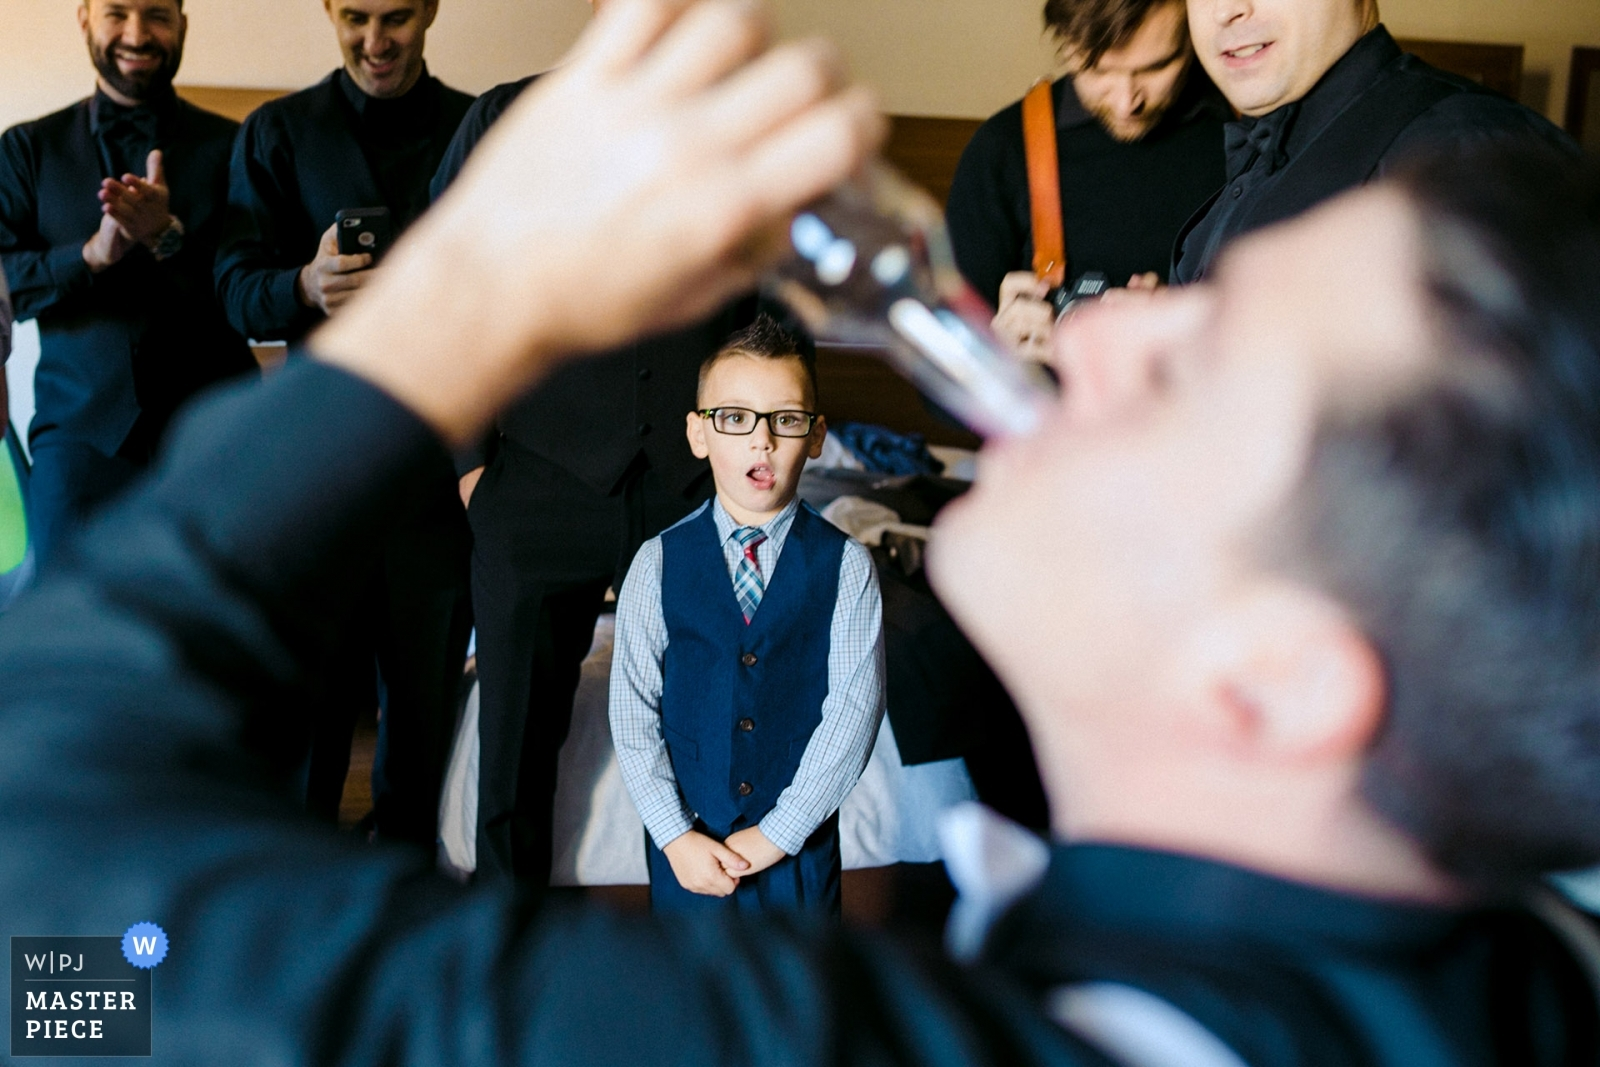 Boy looking at some weird adults wedding traditions - Boston, Massachusetts Wedding Photography -  | wychmere beach club, Cape Cod, MA